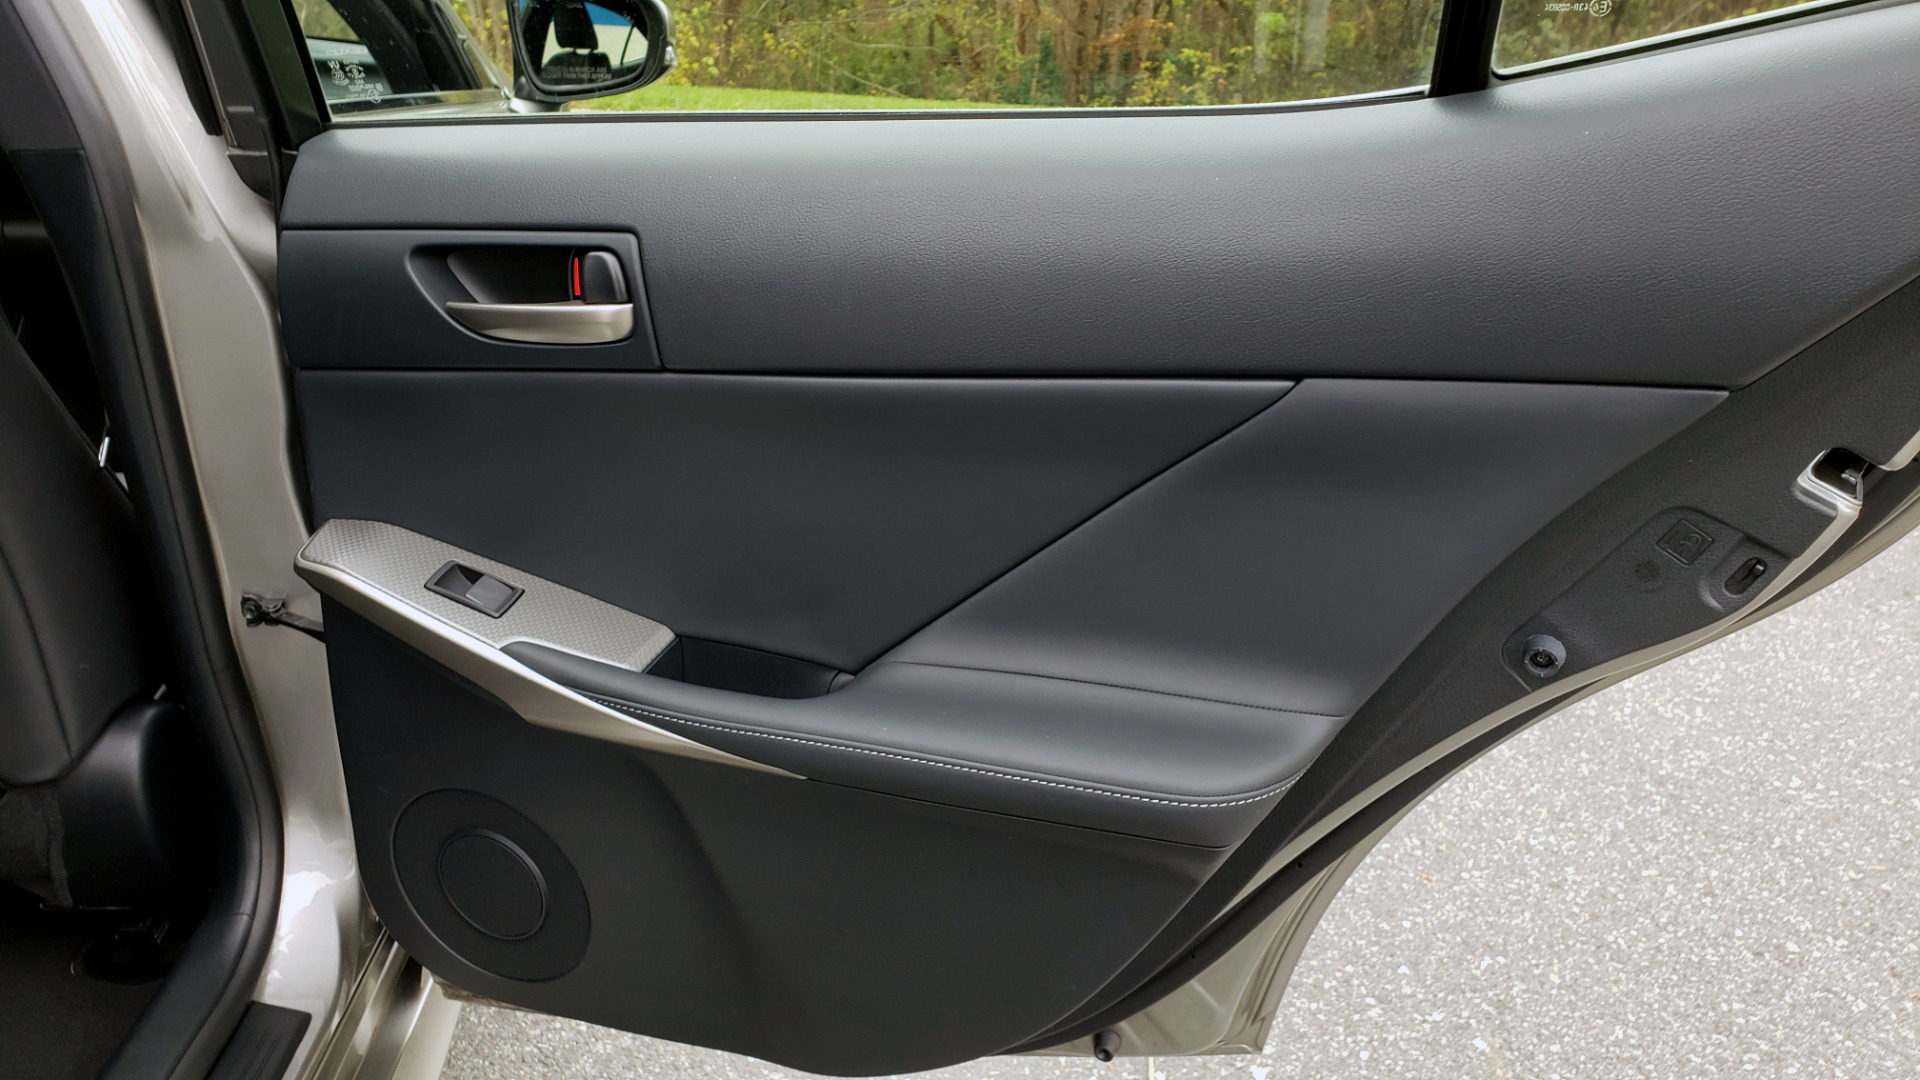 Used 2017 Lexus IS 200 TURBO F-SPORT / BSM / SUNROOF / VENT SEATS / REARVIEW for sale Sold at Formula Imports in Charlotte NC 28227 74